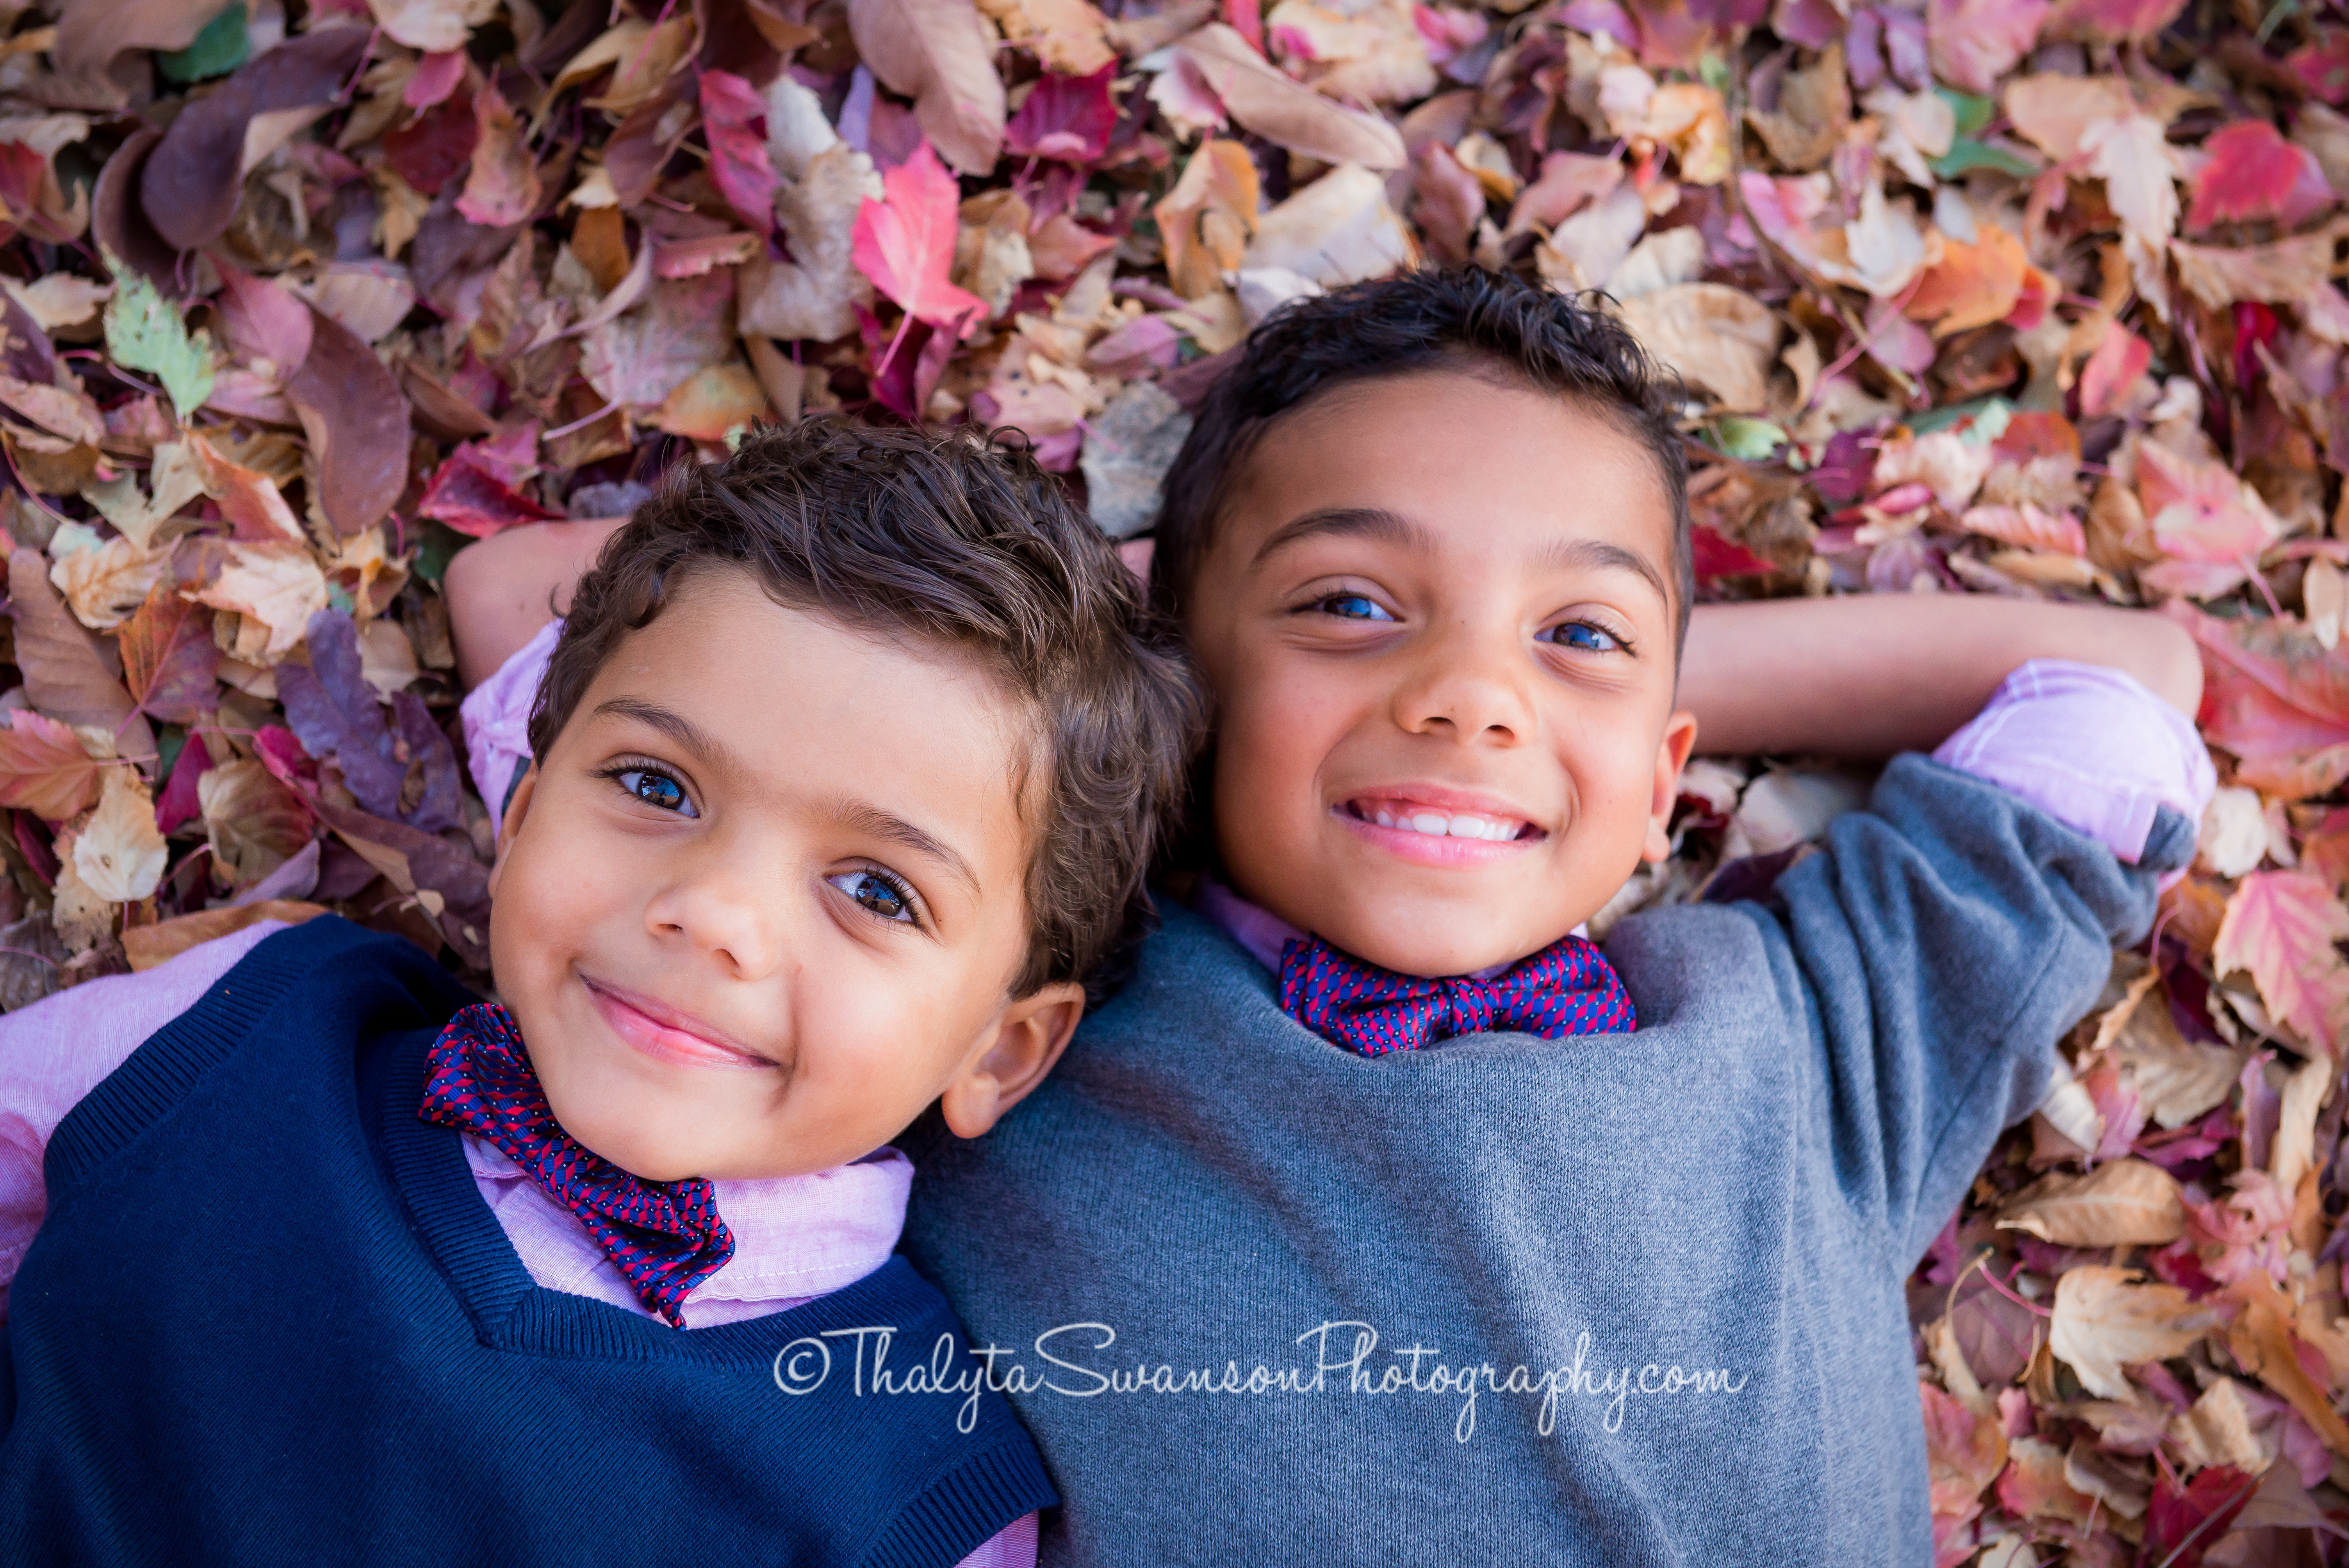 thalyta-swanson-photography-fort-collins-photographer